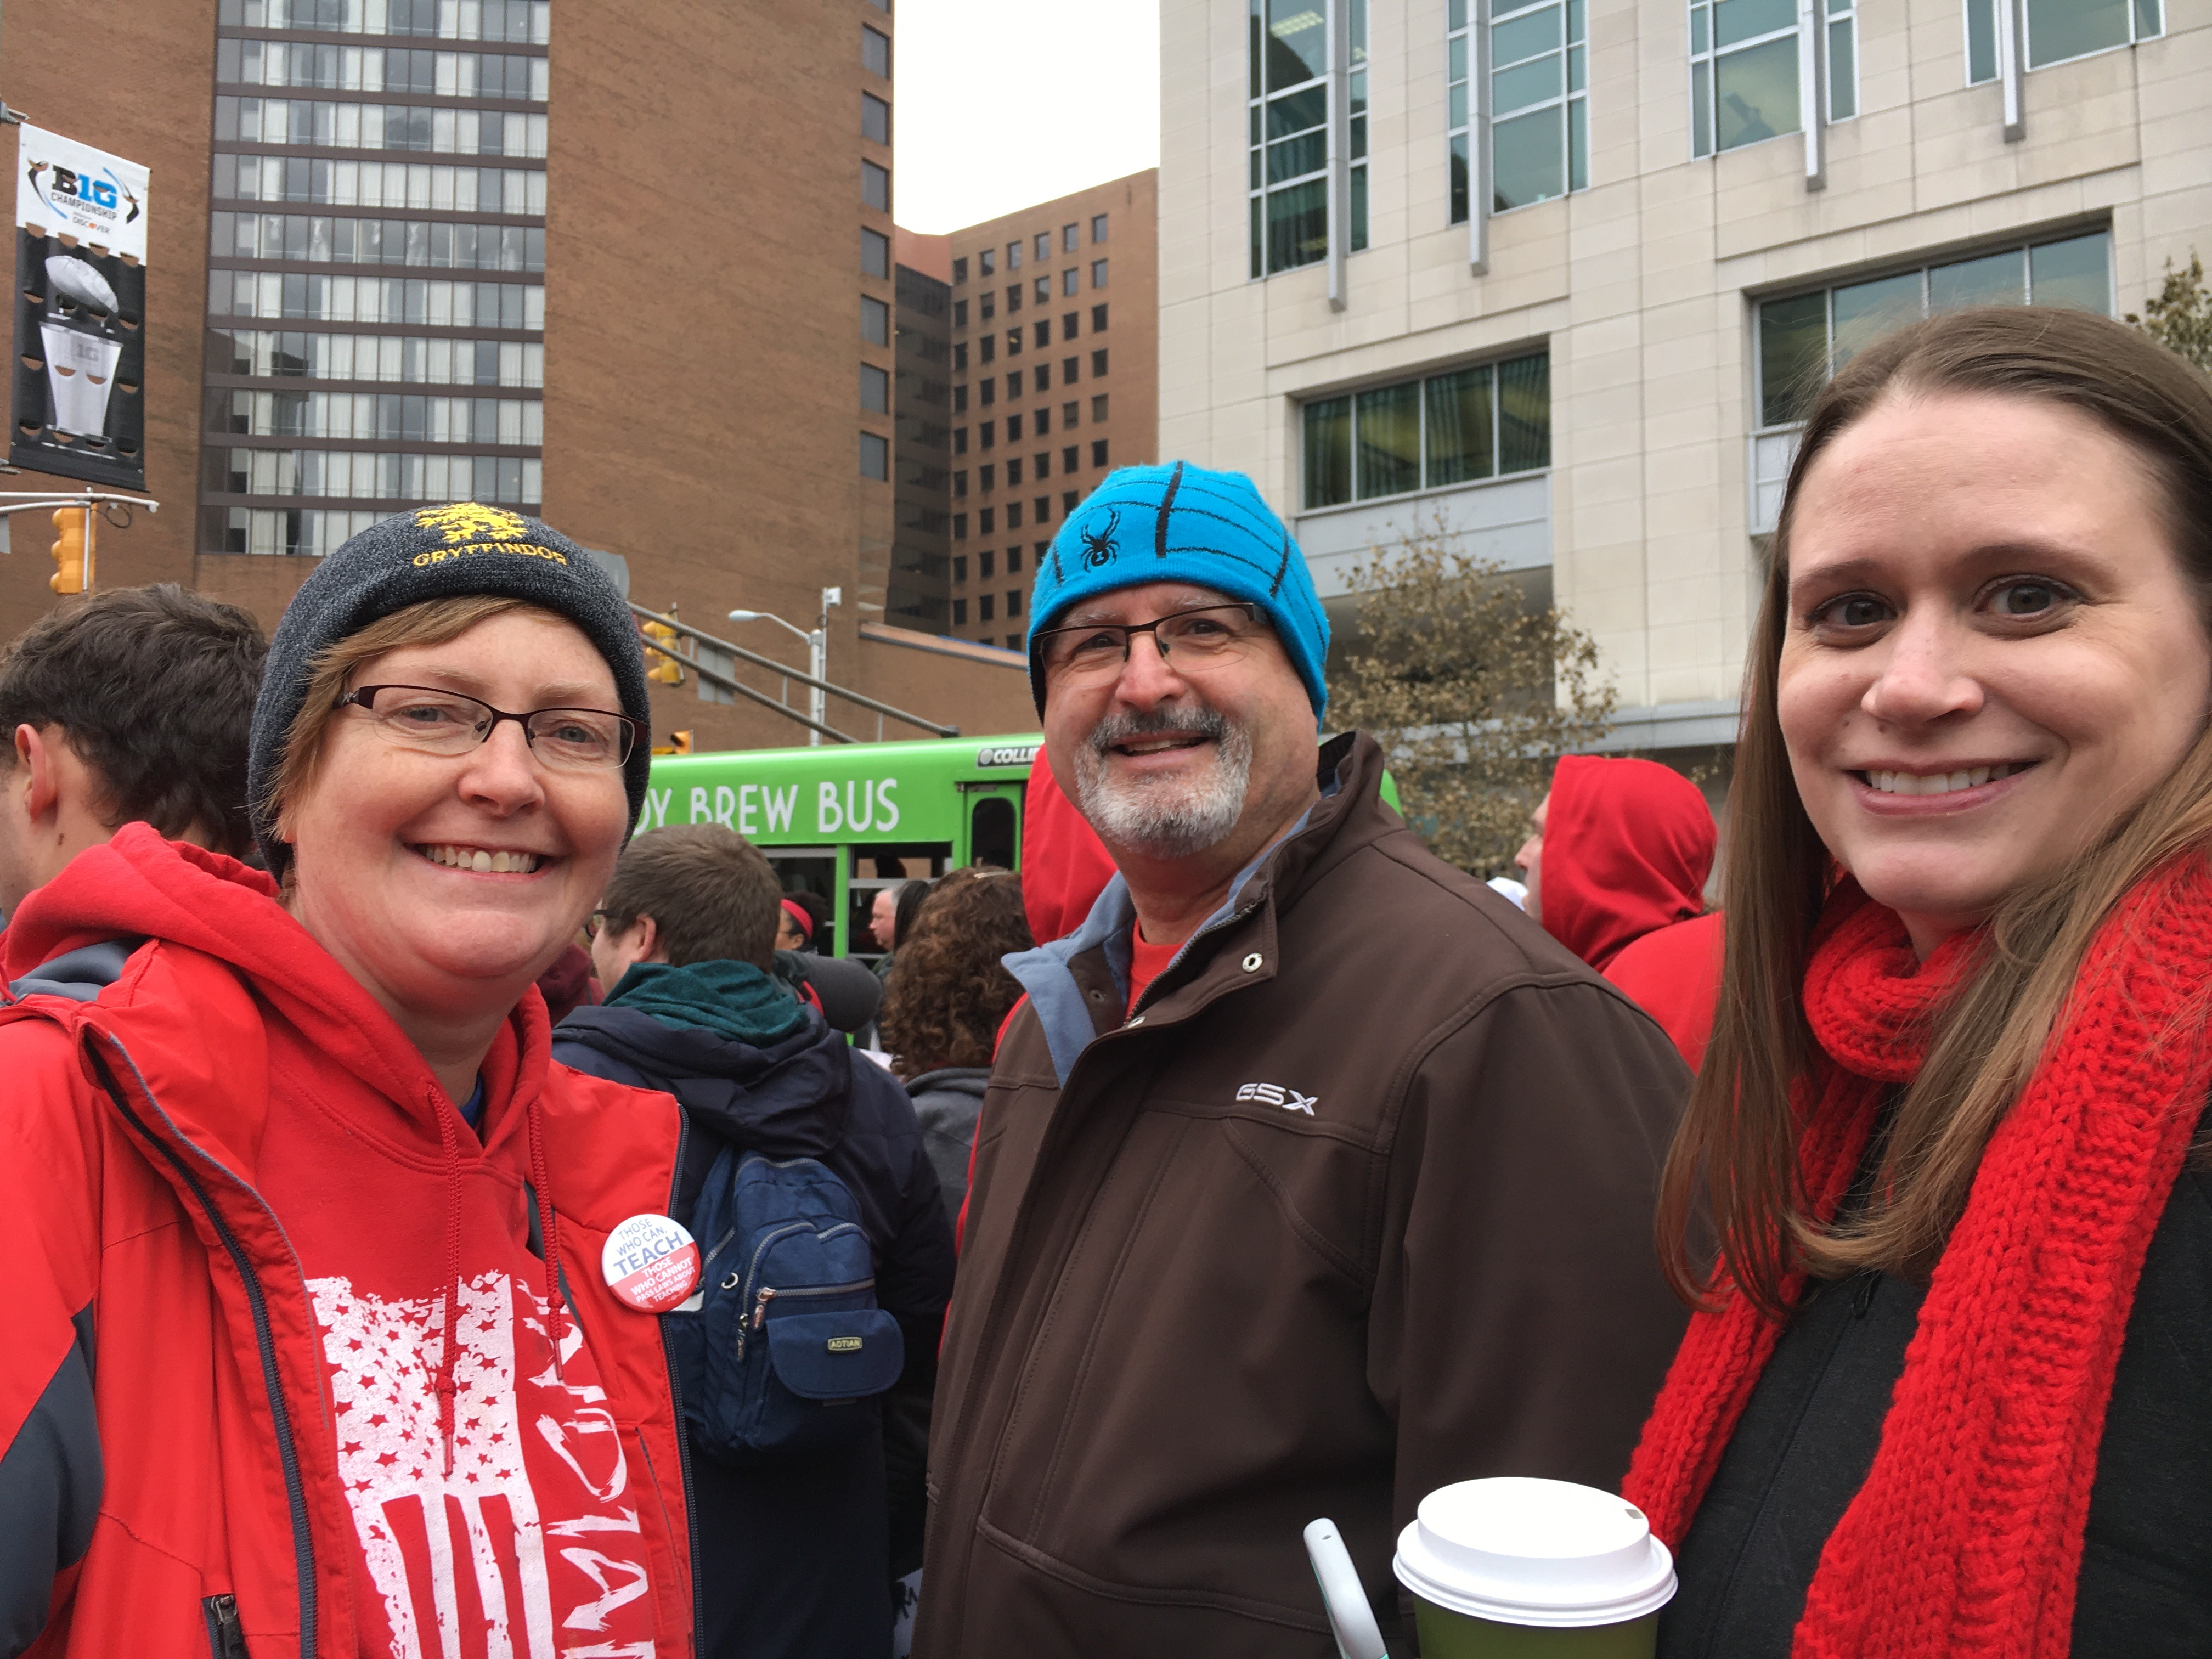 Dr. Veracco and LC teachers gather in Indianapolis with other teachers across the state marching for Red 4 Ed.